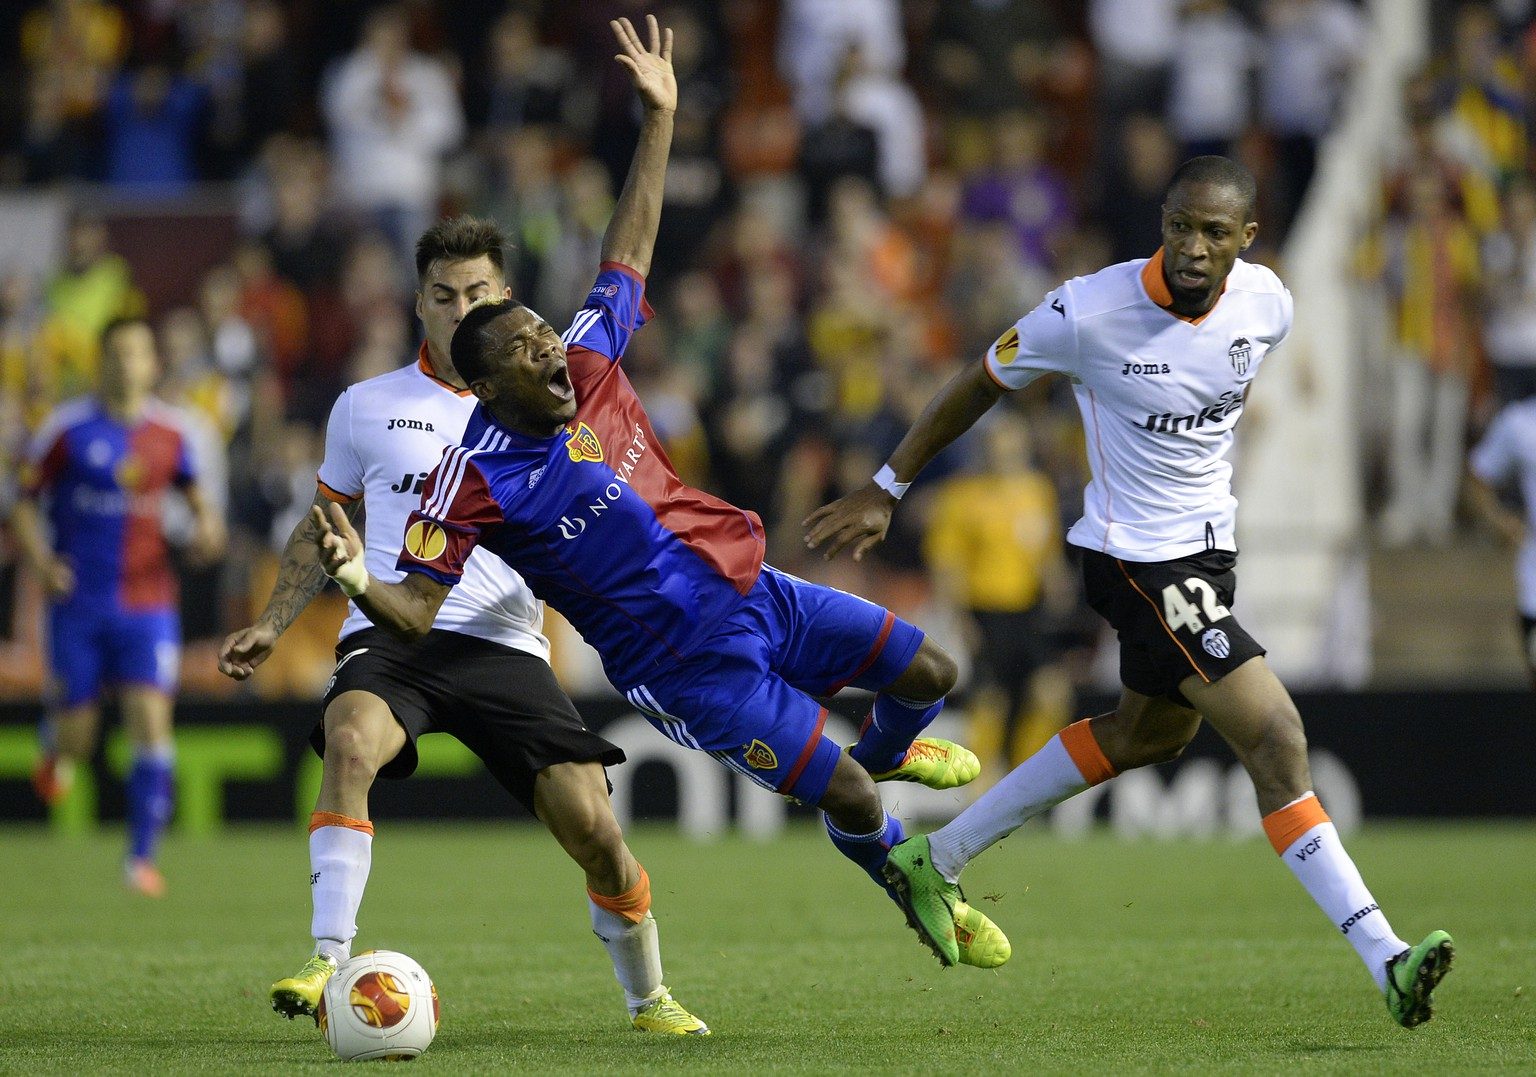 Basel's Geoffroy Serey Die, center, fights for the ball against ValenciaÕs Eduardo Vargas, left, and ValenciaÕs Seydou Keita, right, during the UEFA Europa League quarter final second leg soccer match between Spain's Valencia CF and Switzerland's FC Basel 1893 at the Mestalla stadium in Valencia, Spain, on Thursday, April 10, 2014. (KEYSTONE/Georgios Kefalas)